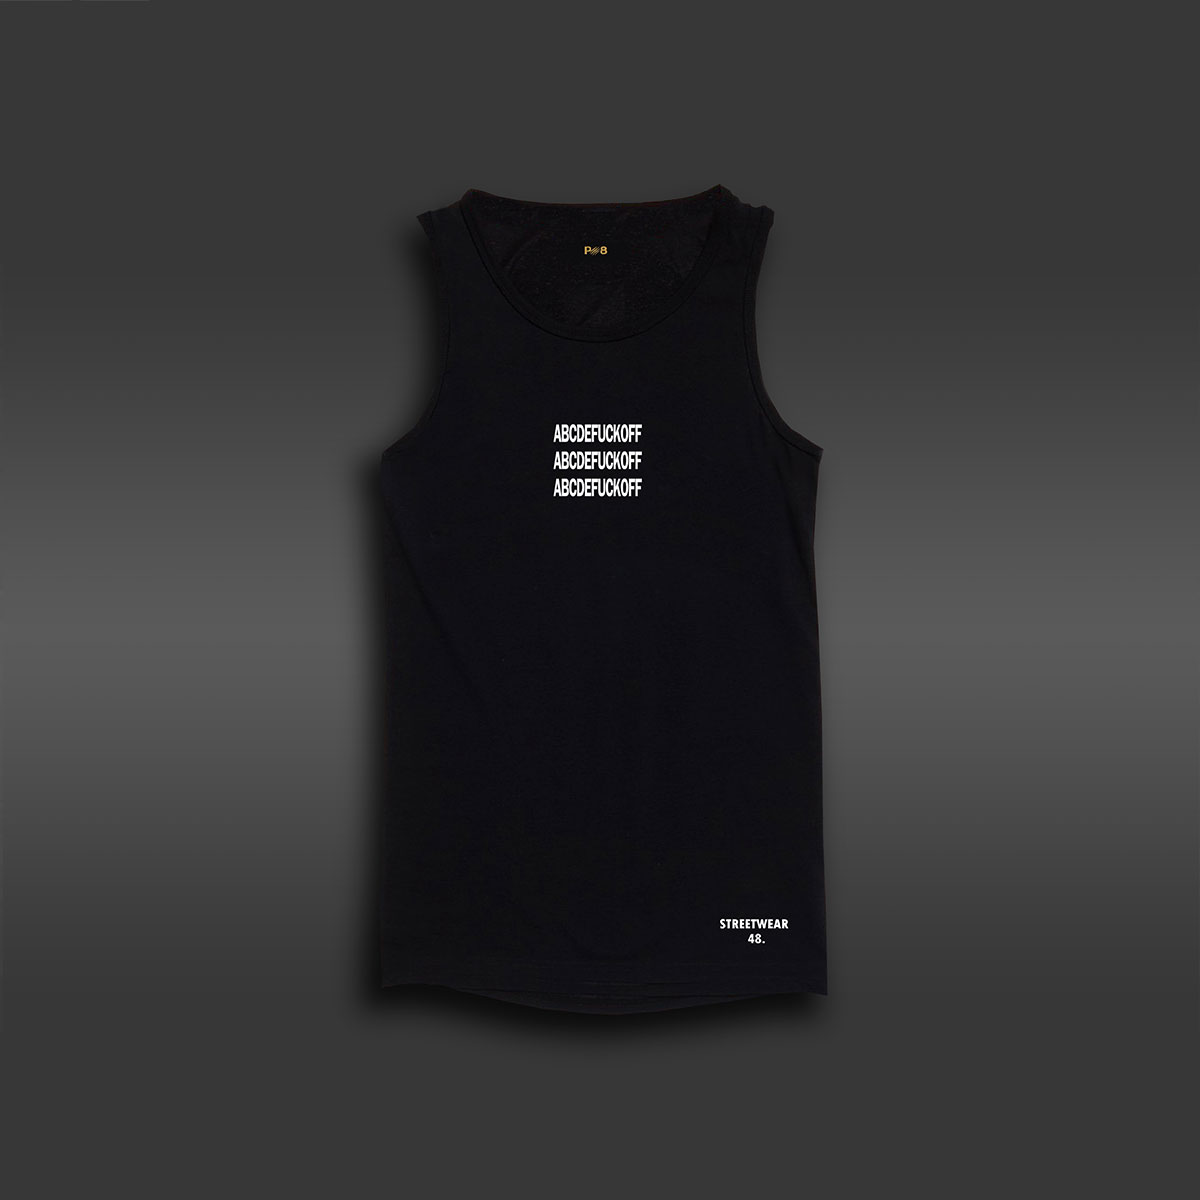 ABCDEF*K OFF Long-line Tank - Black